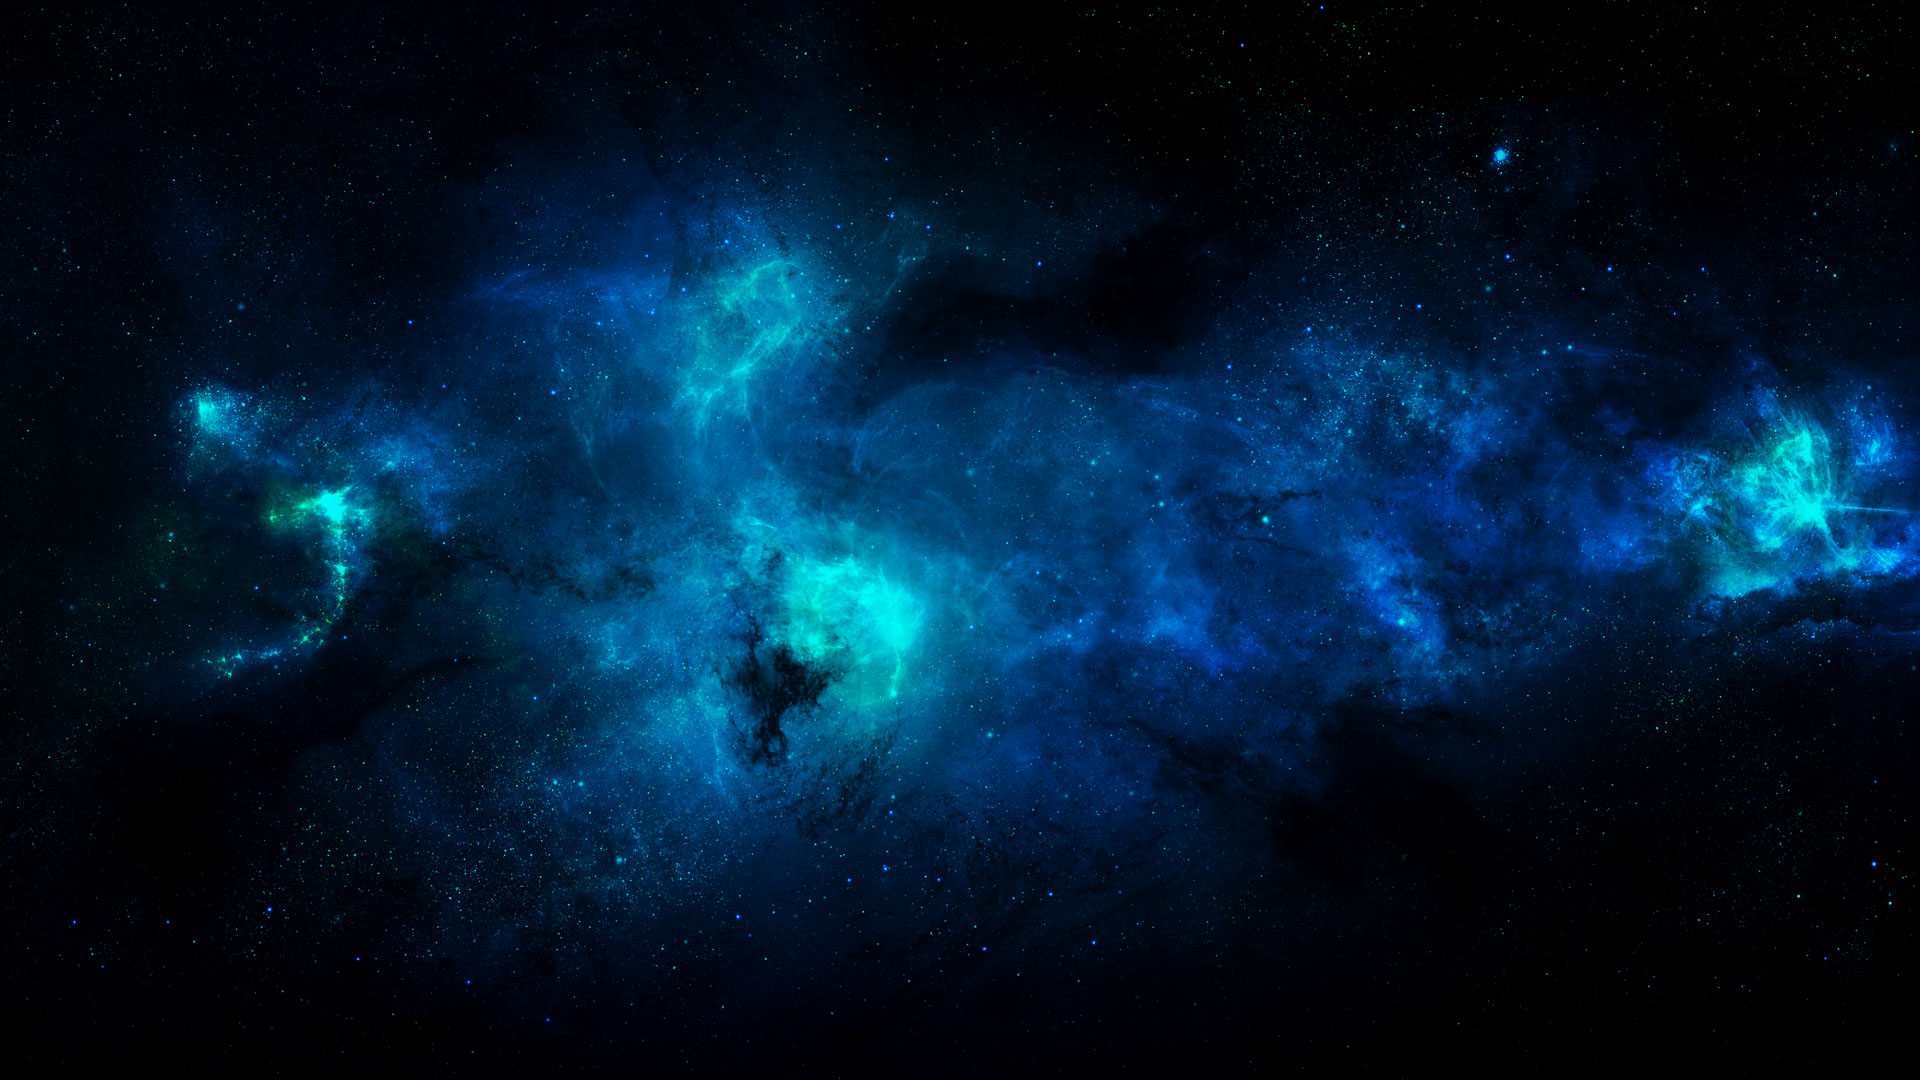 Blue Galaxy wallpaper   855390 1920x1080